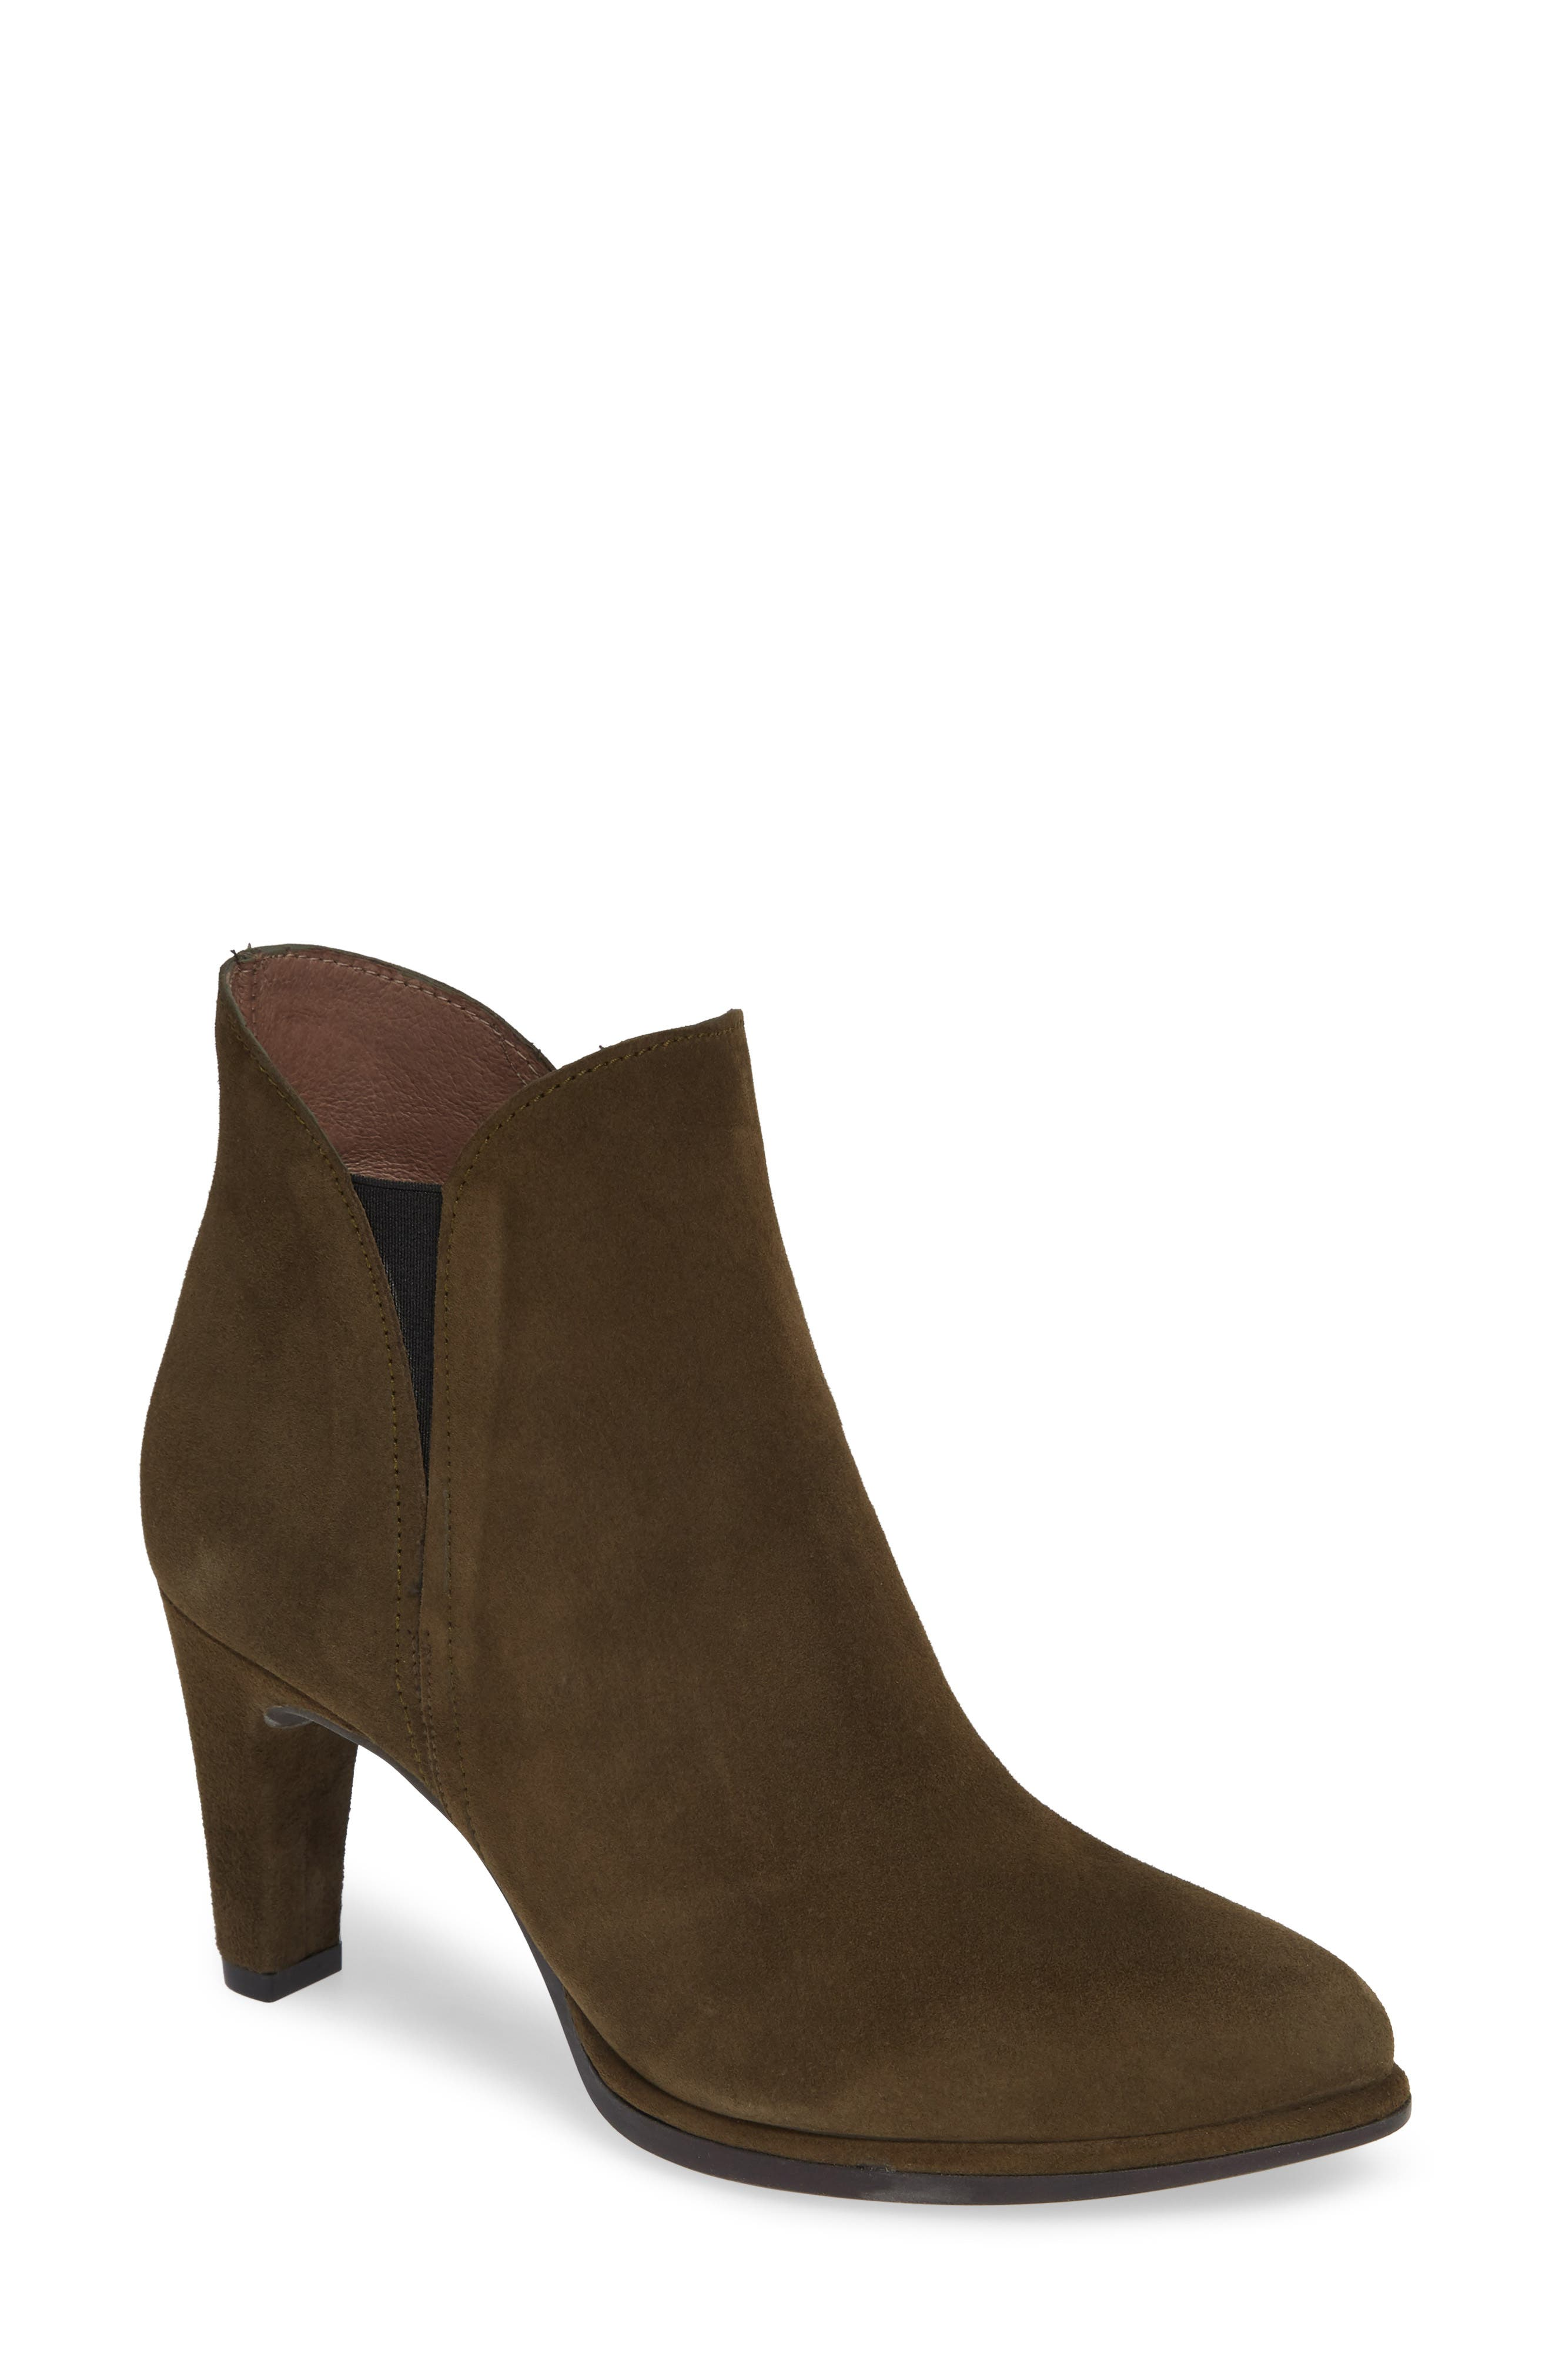 WONDERS, Chelsea Boot, Main thumbnail 1, color, MILITARY GREEN SUEDE